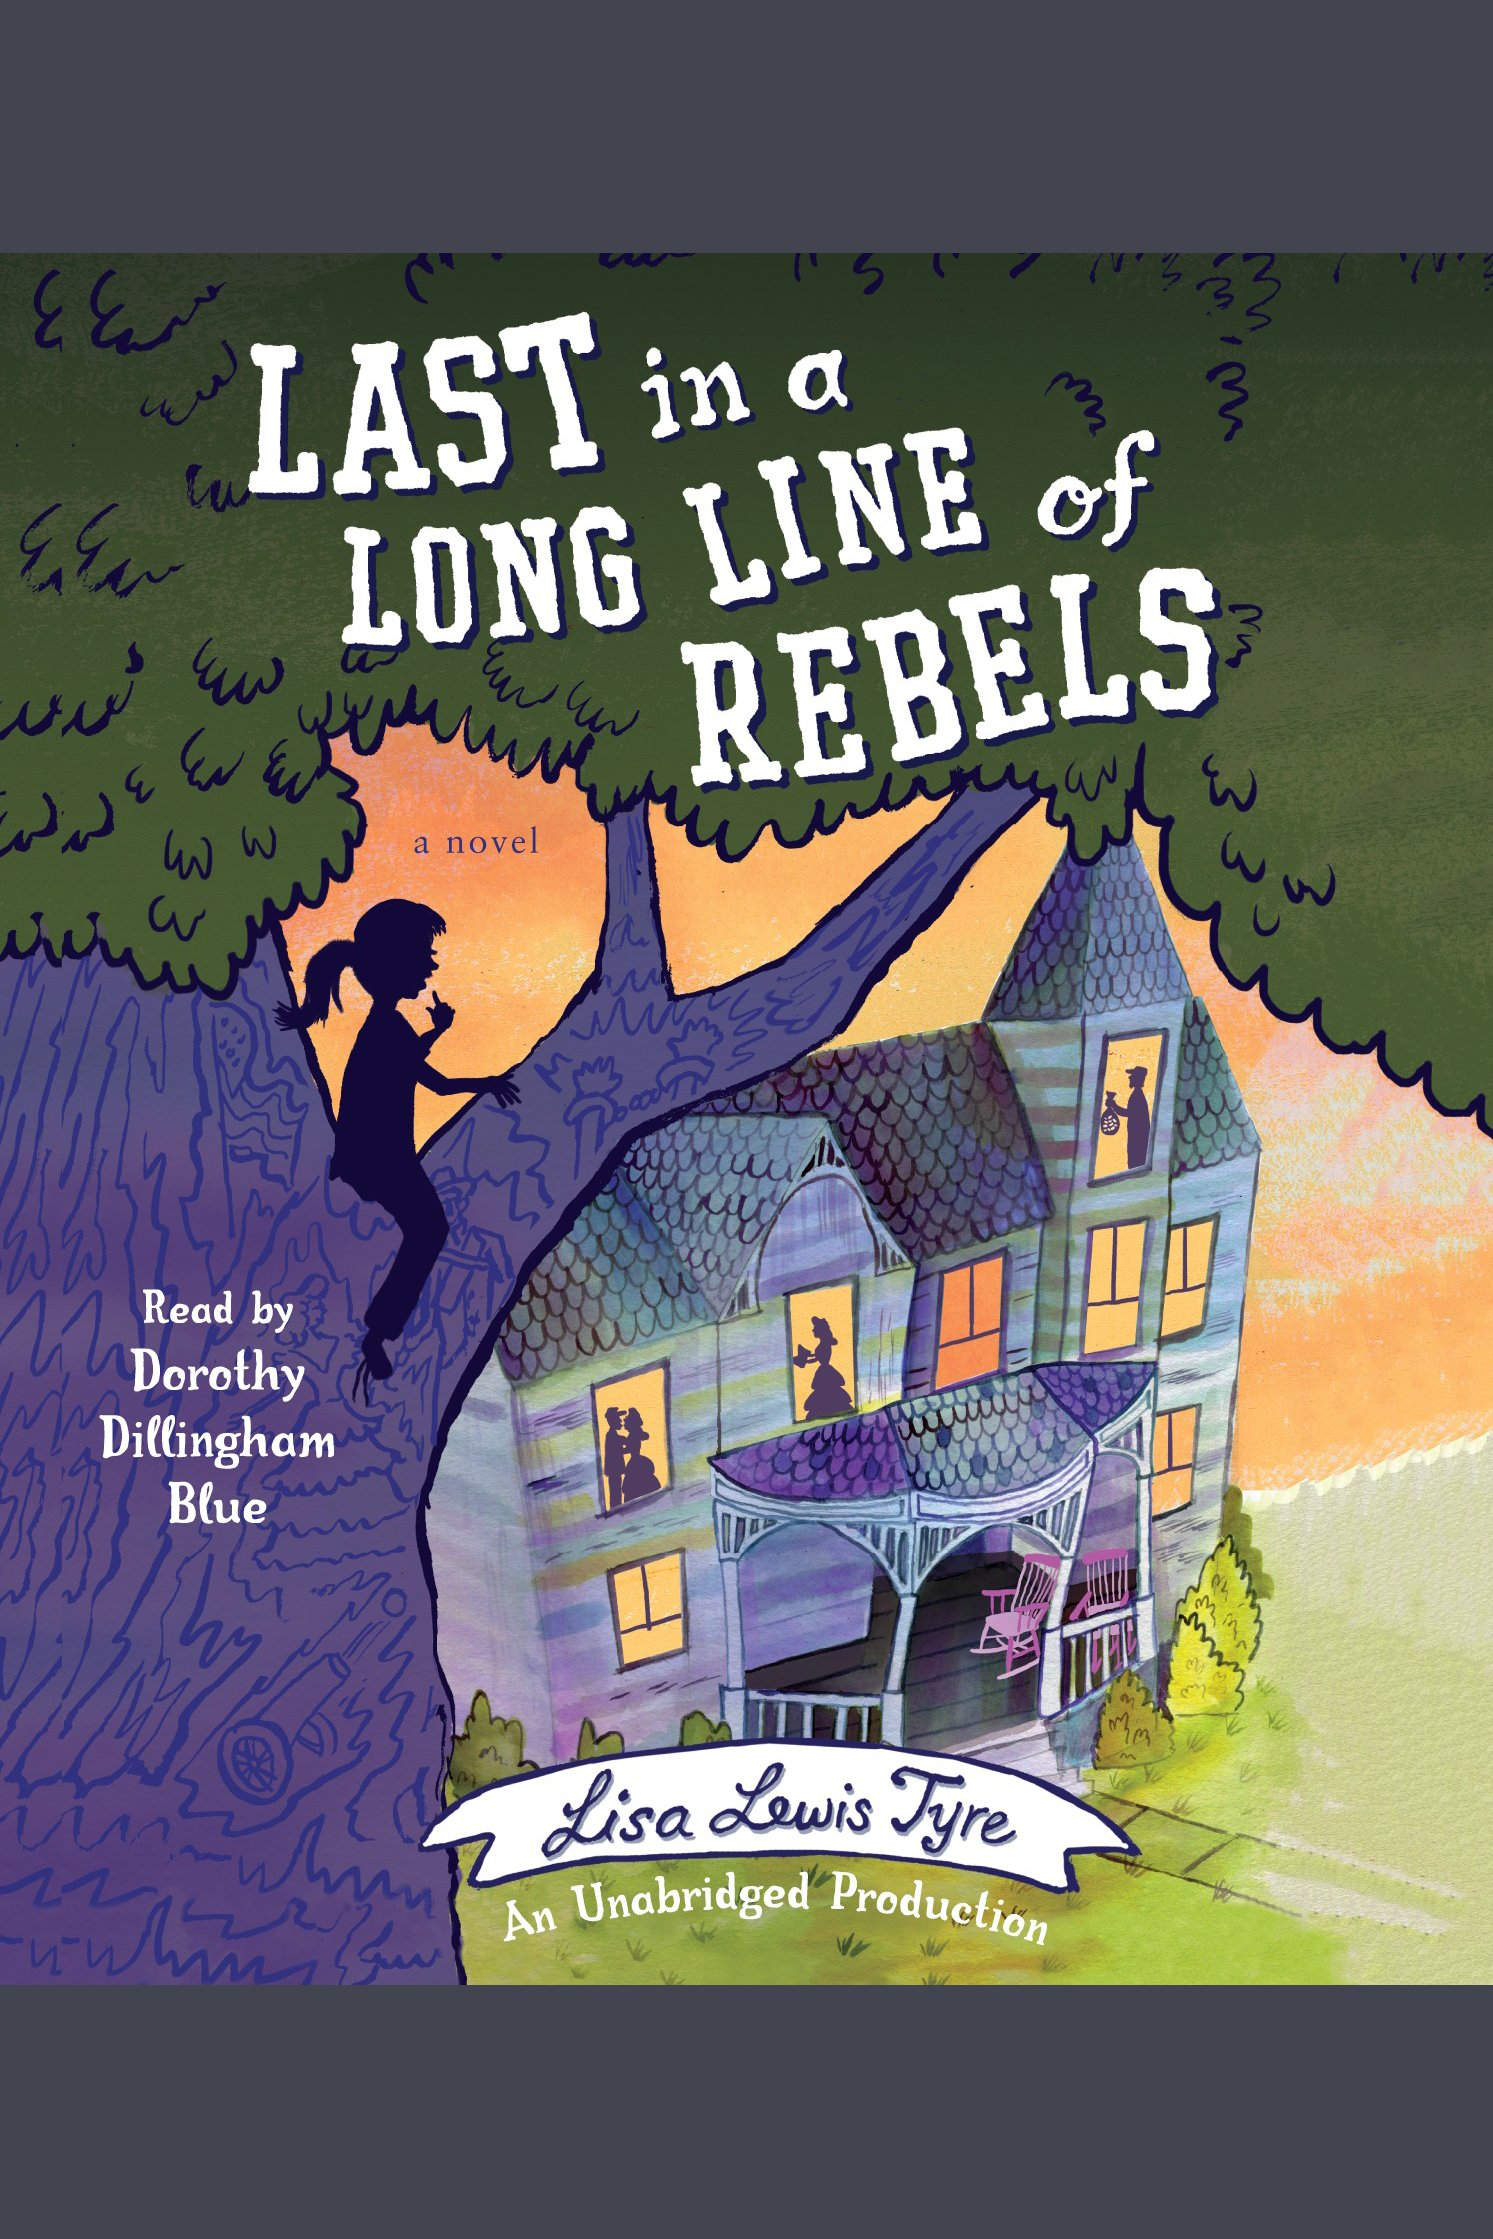 Last in a long line of rebels cover image